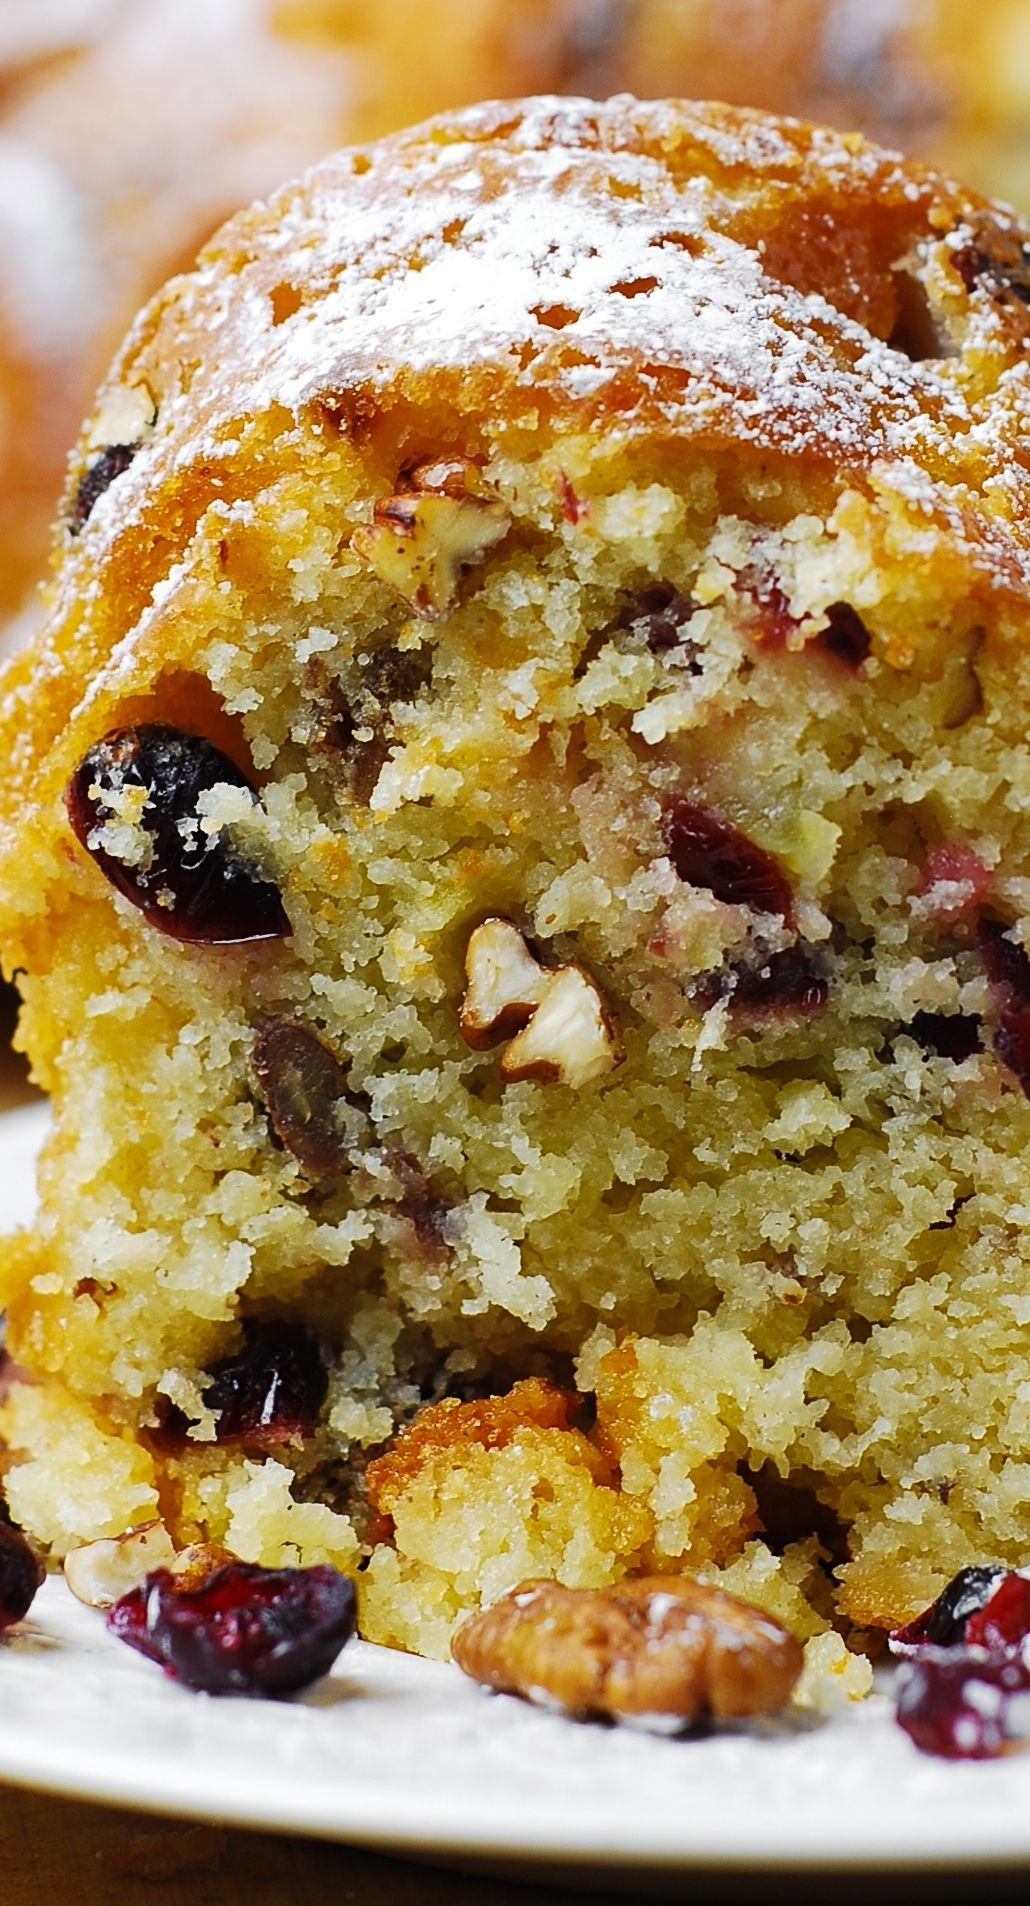 Holiday Vanilla Buttermilk Cake With Cranberries Apples And Pecans Ad Sponsored Cake Recipes Cranberry Recipes Dessert Recipes